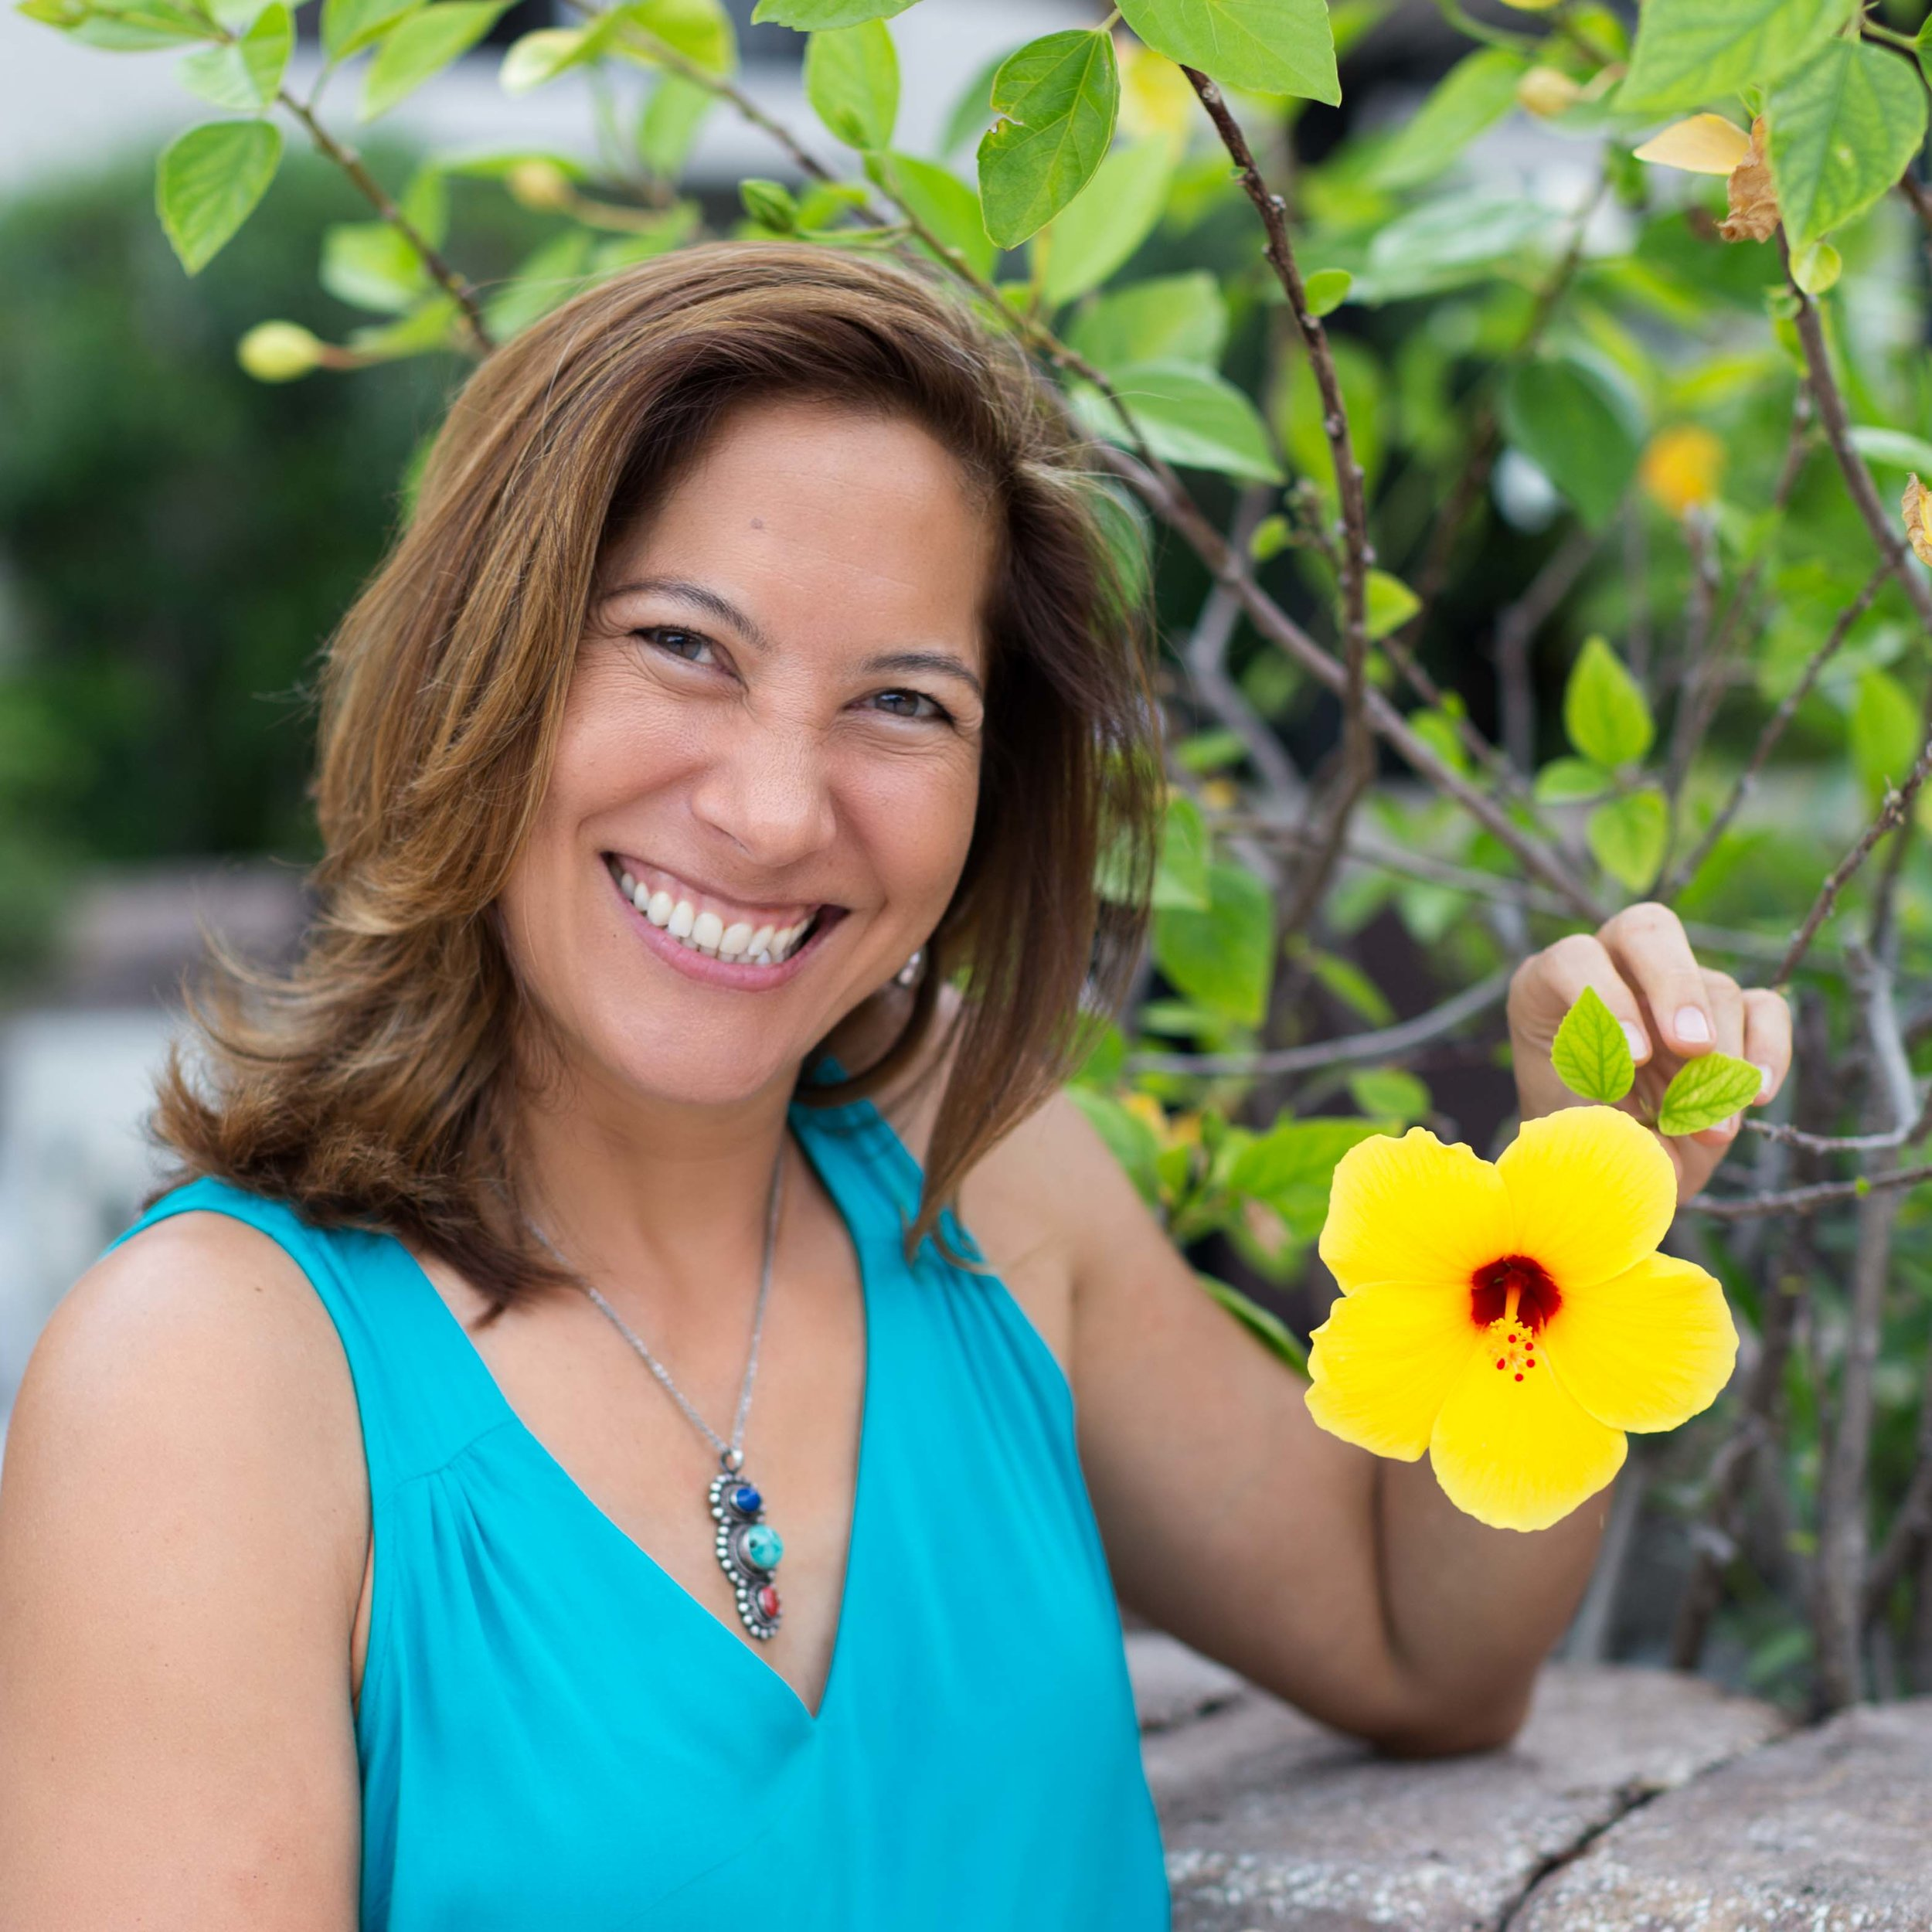 smiling-woman-holding-yellow-flower-photography